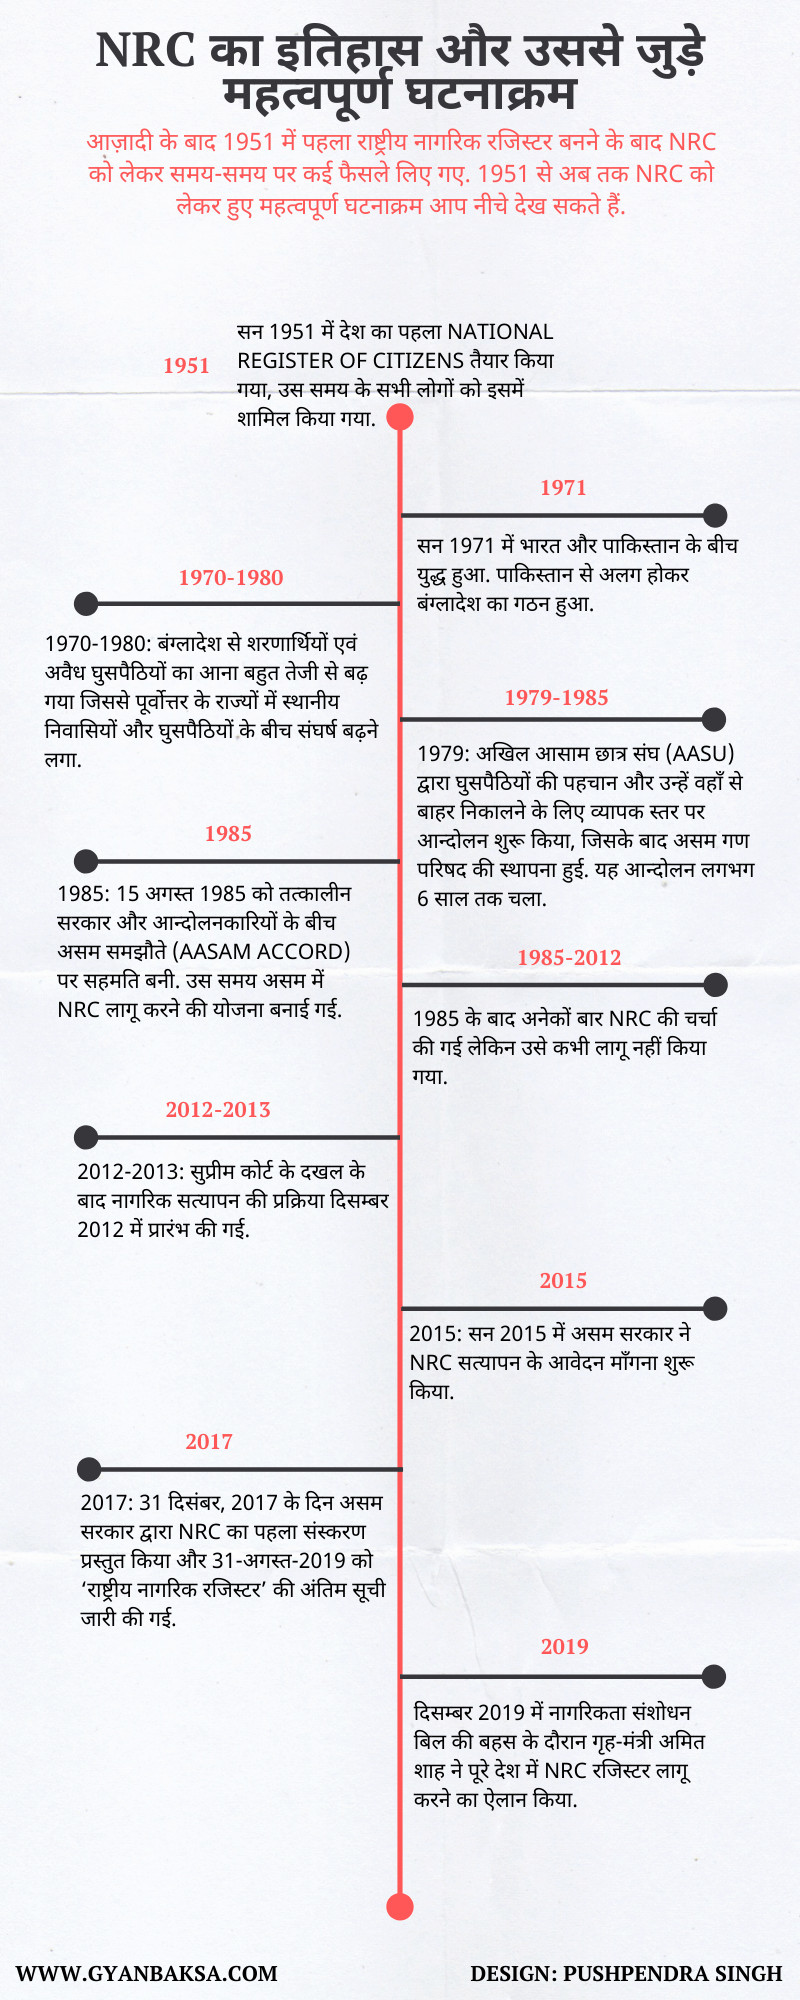 NRC history and timeline in hindi